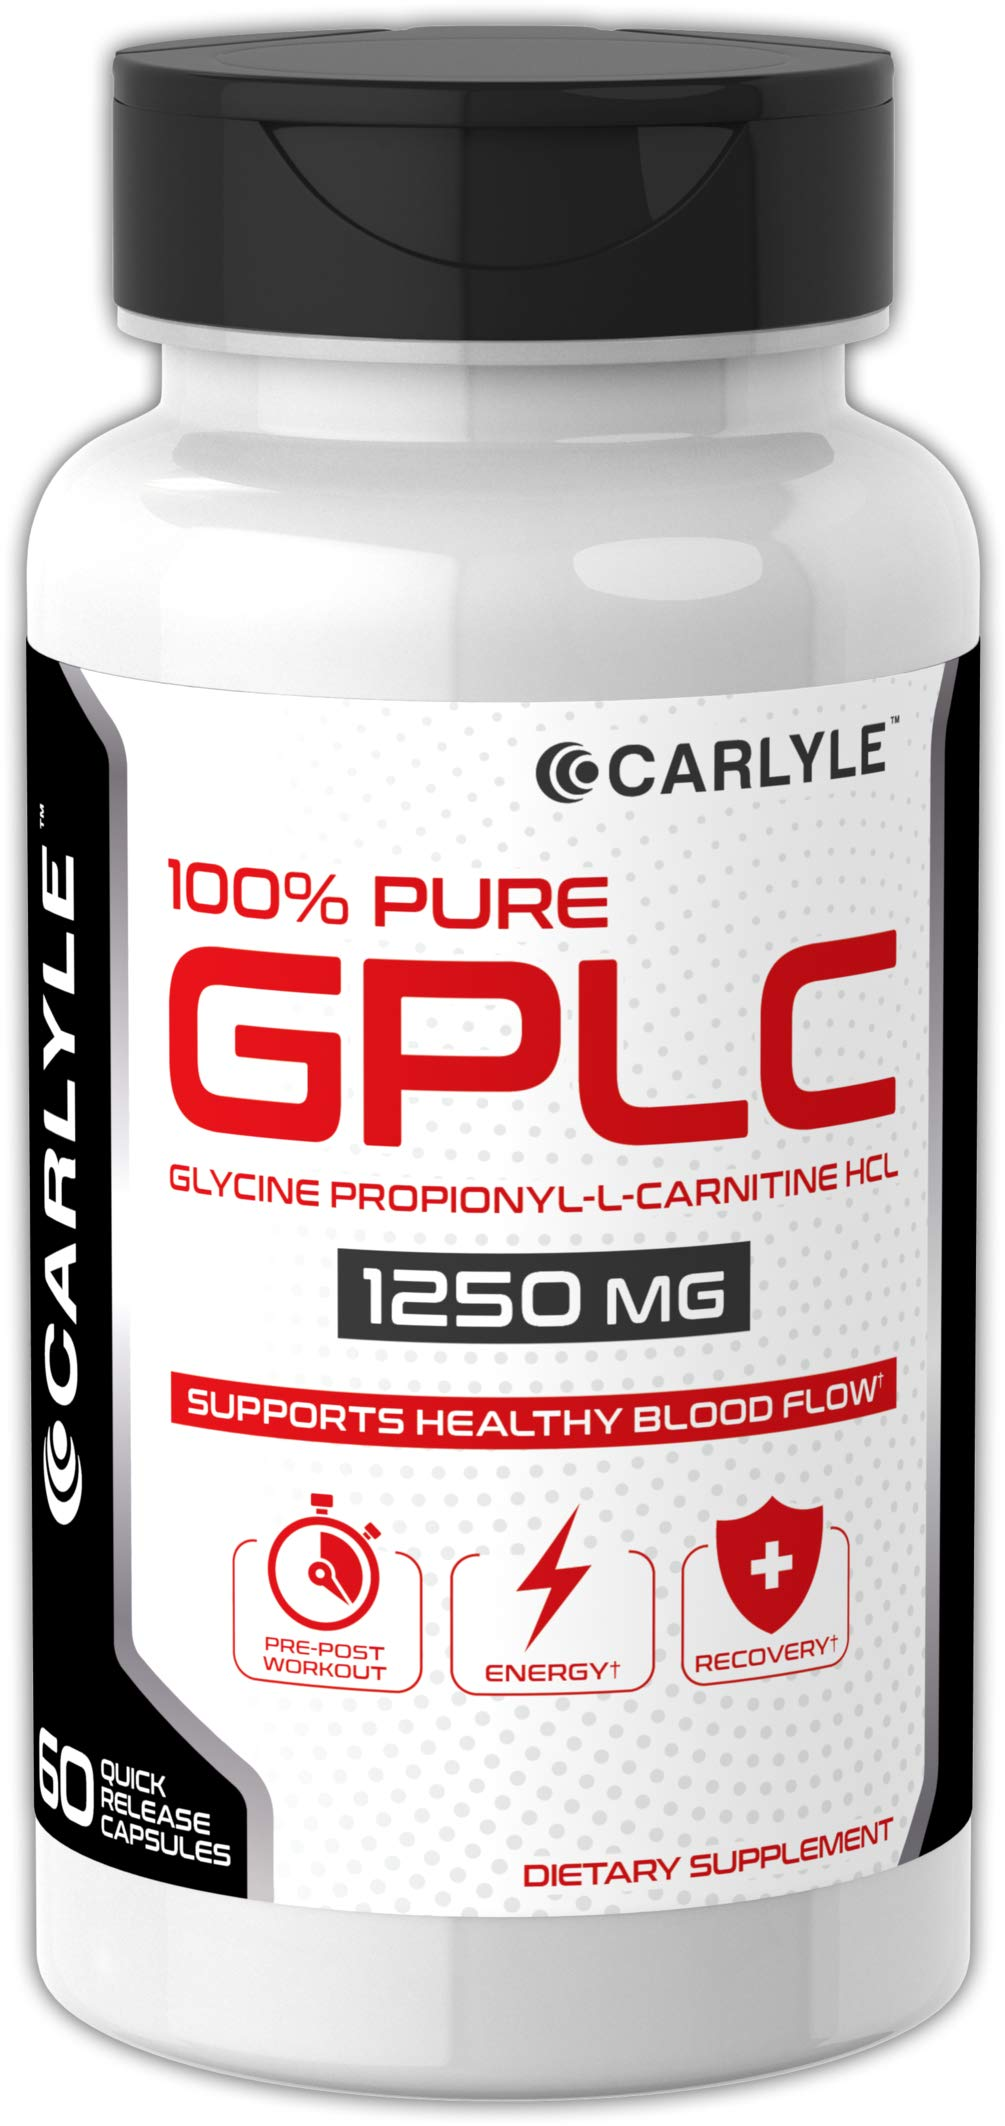 Carlyle GPLC 1250 mg 60 Capsules | Glycine Propionyl-L-Carnitine HCL | 100% Pure, Highest Potency Supplement for Healthy Blood Flow